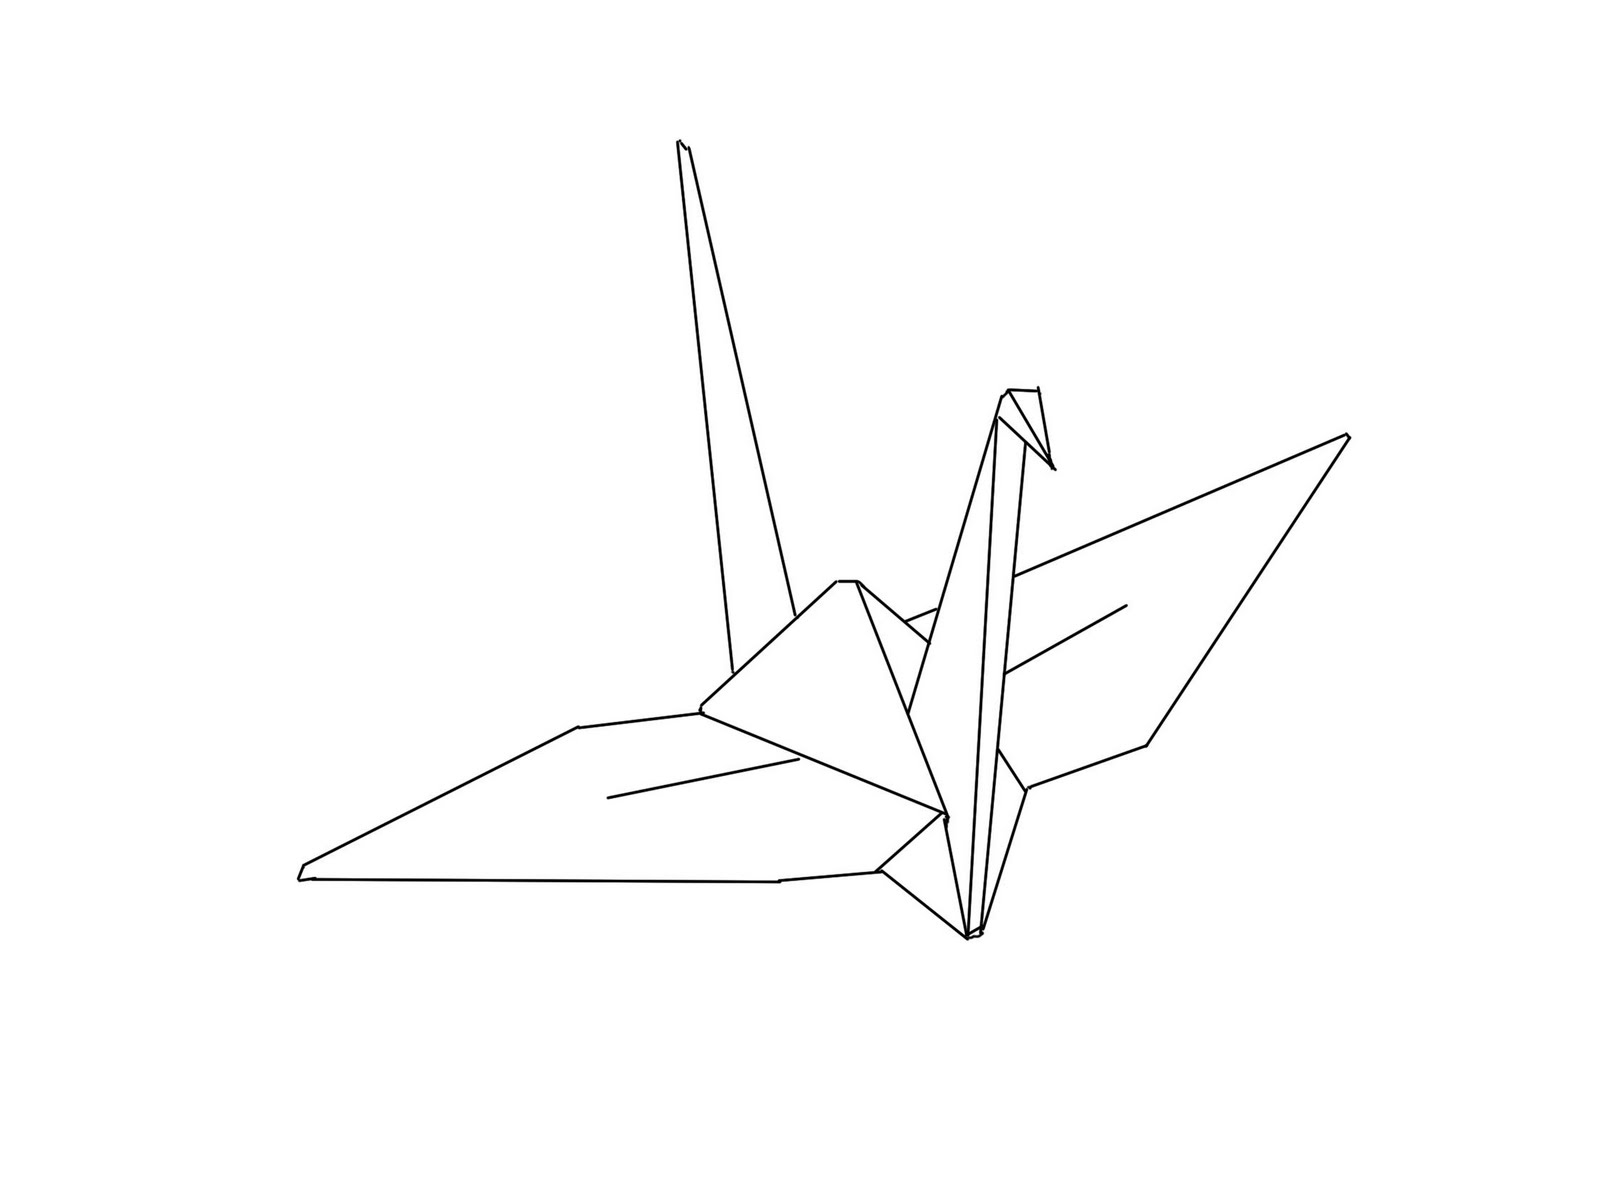 1600x1200 The Kitchen Table Crafter Free Digi Sketch Origami Peace Crane